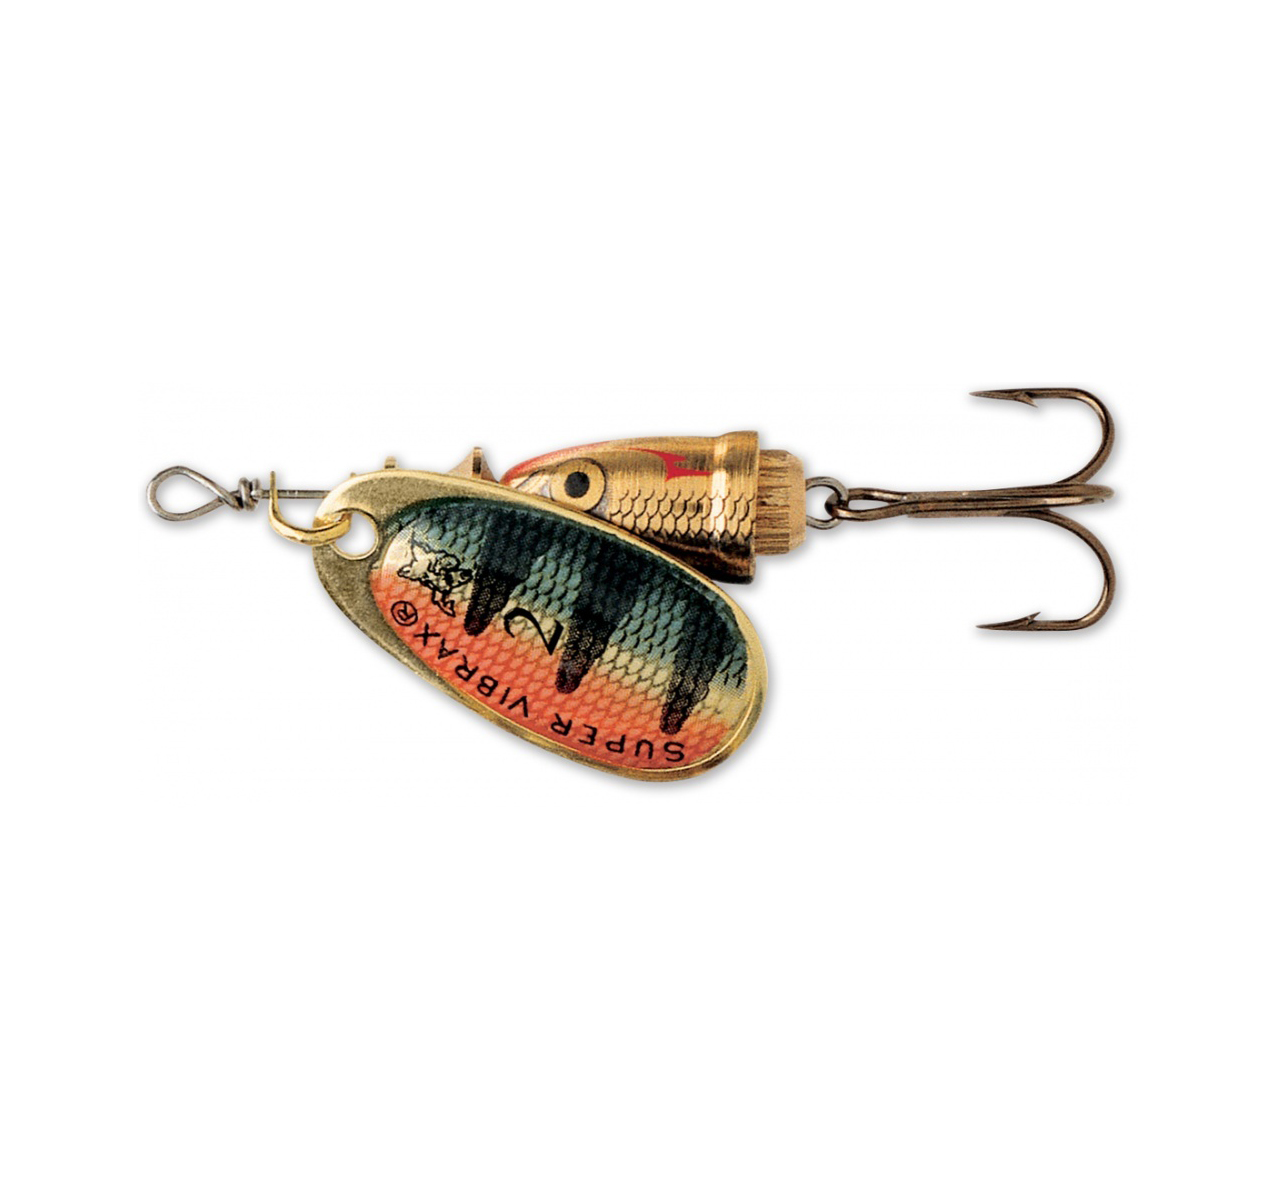 Blue Fox Vibrax Shad 3 - 8g